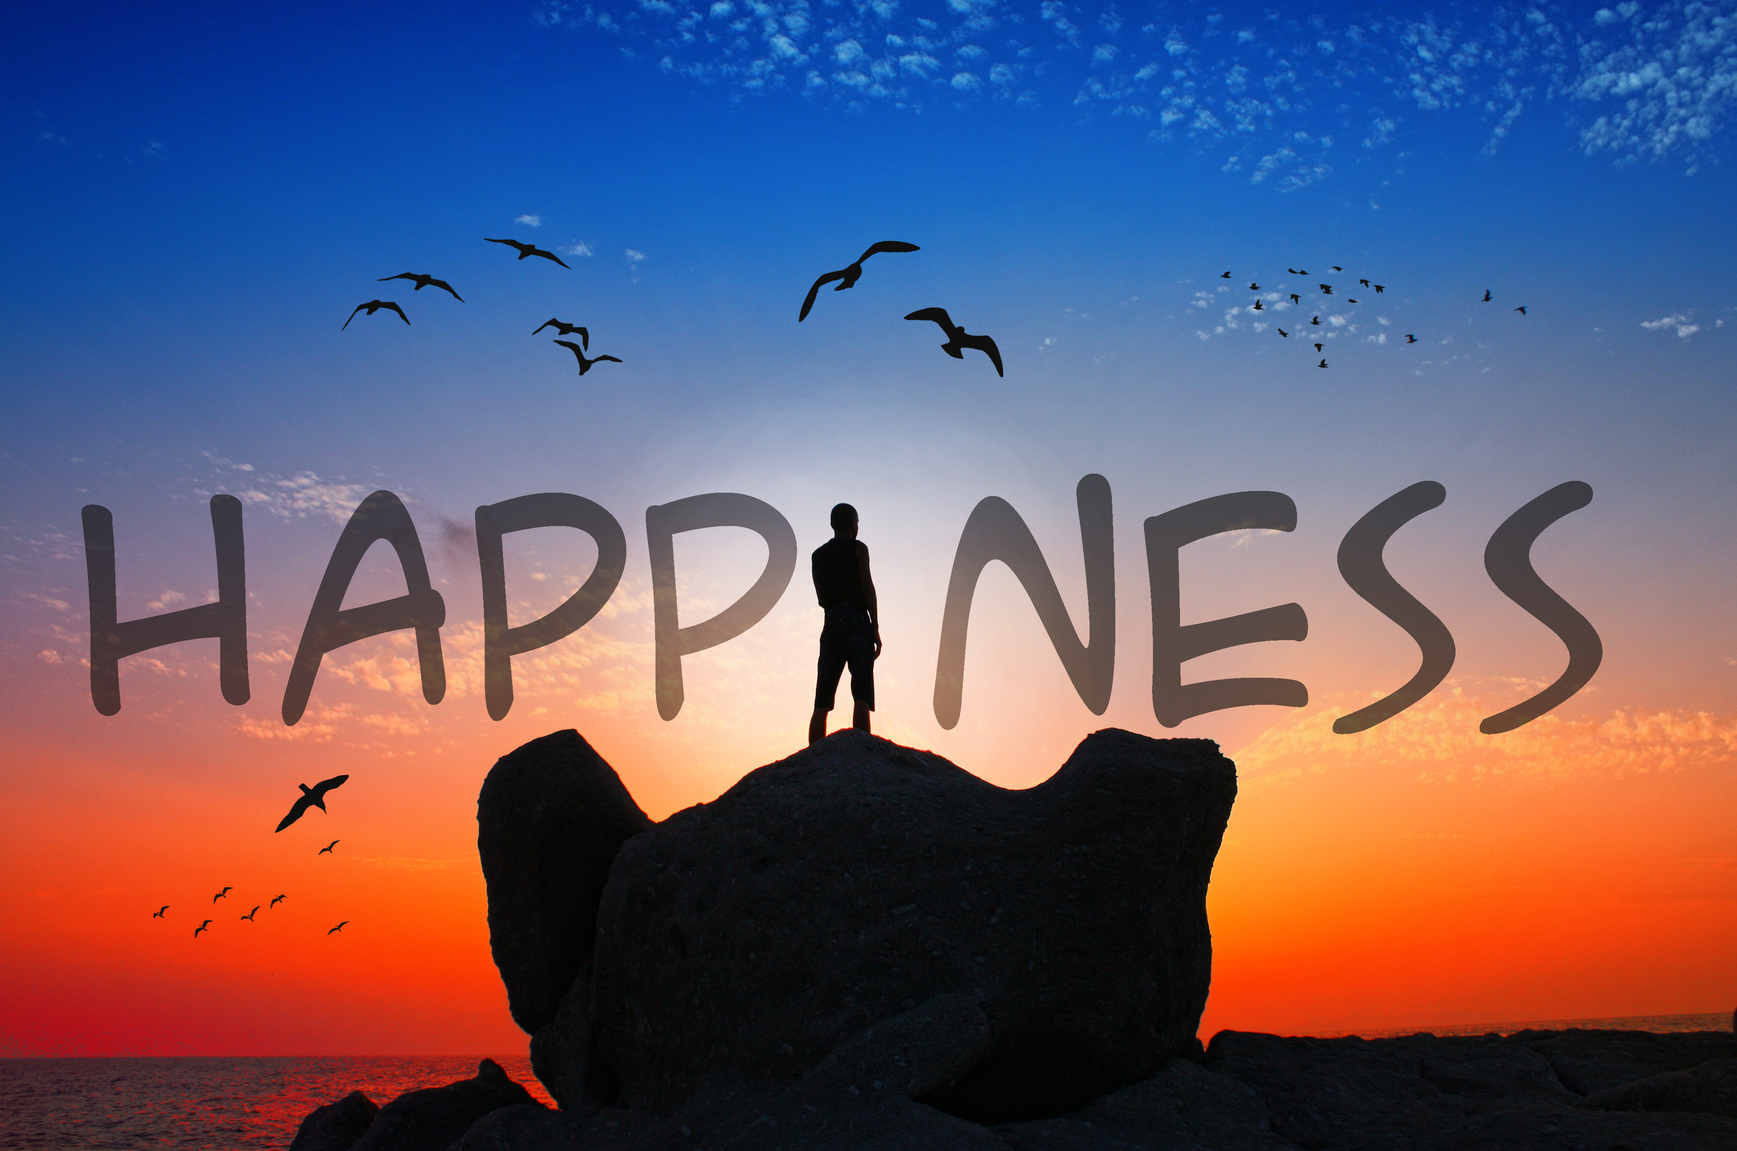 Happiness Sign Wallpaper 27.19 Kb